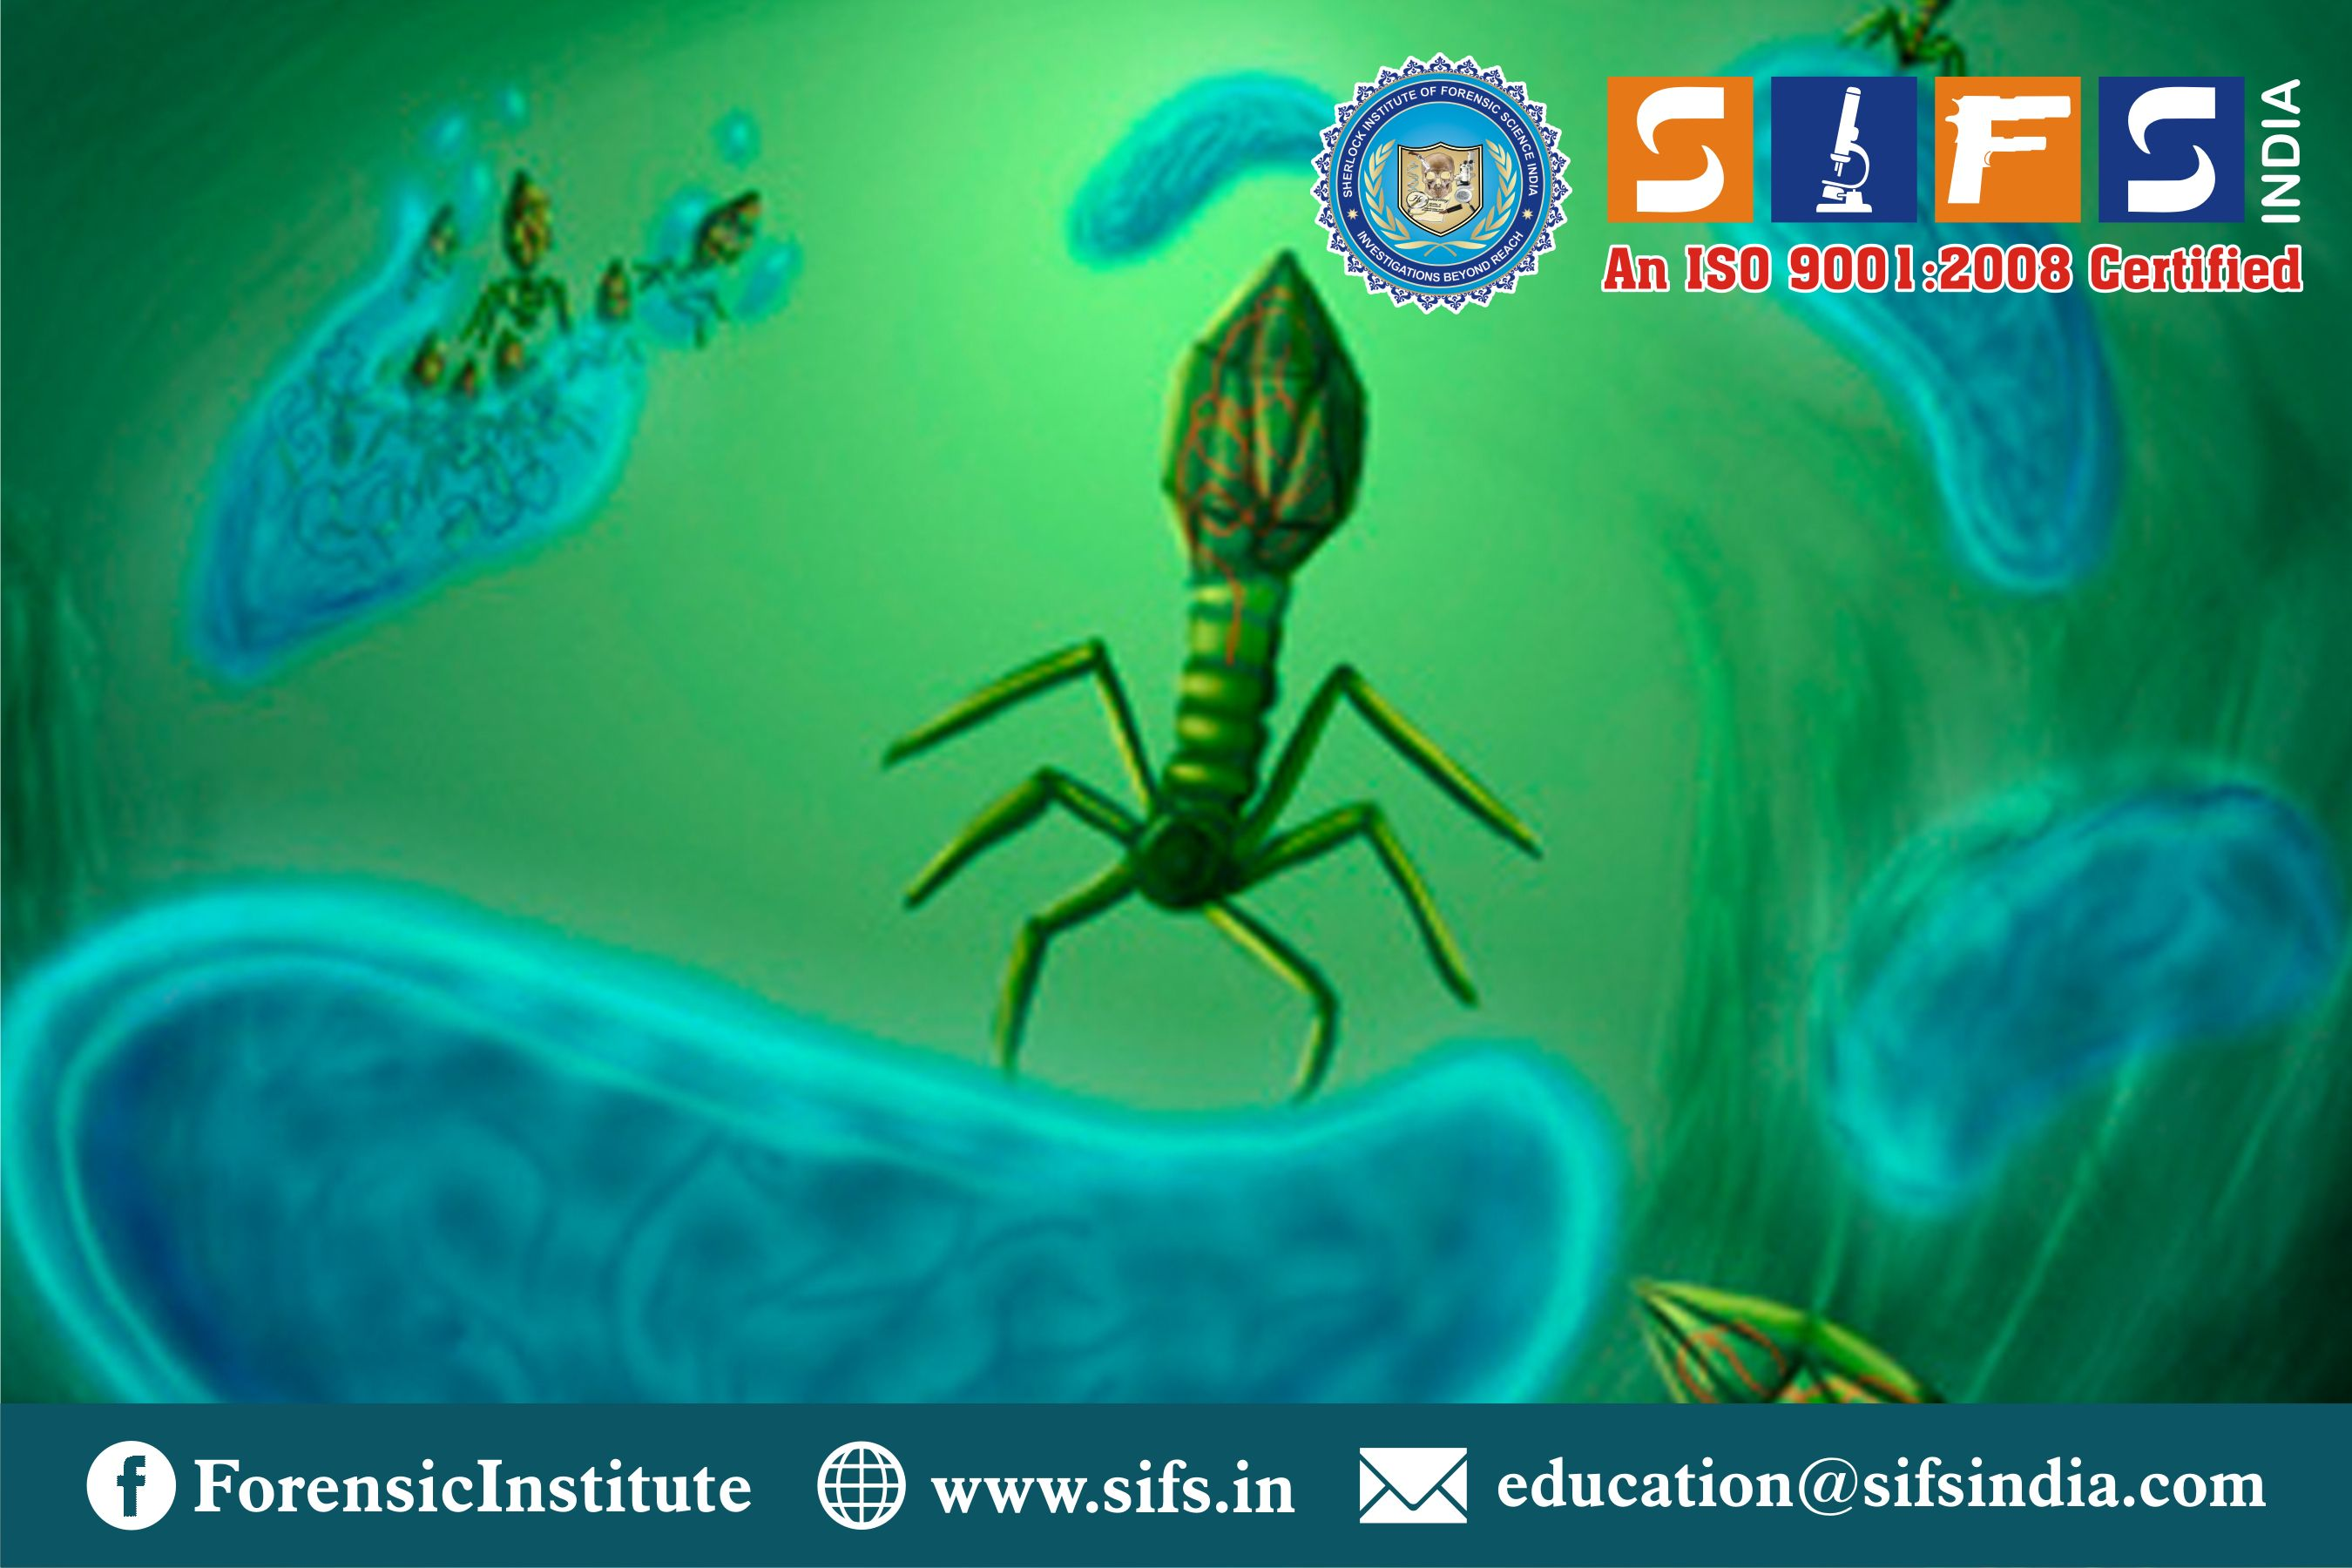 Forensic Entomology Course Online Do Certificate Diploma And Pg Diploma Forensics Entomology Zoology